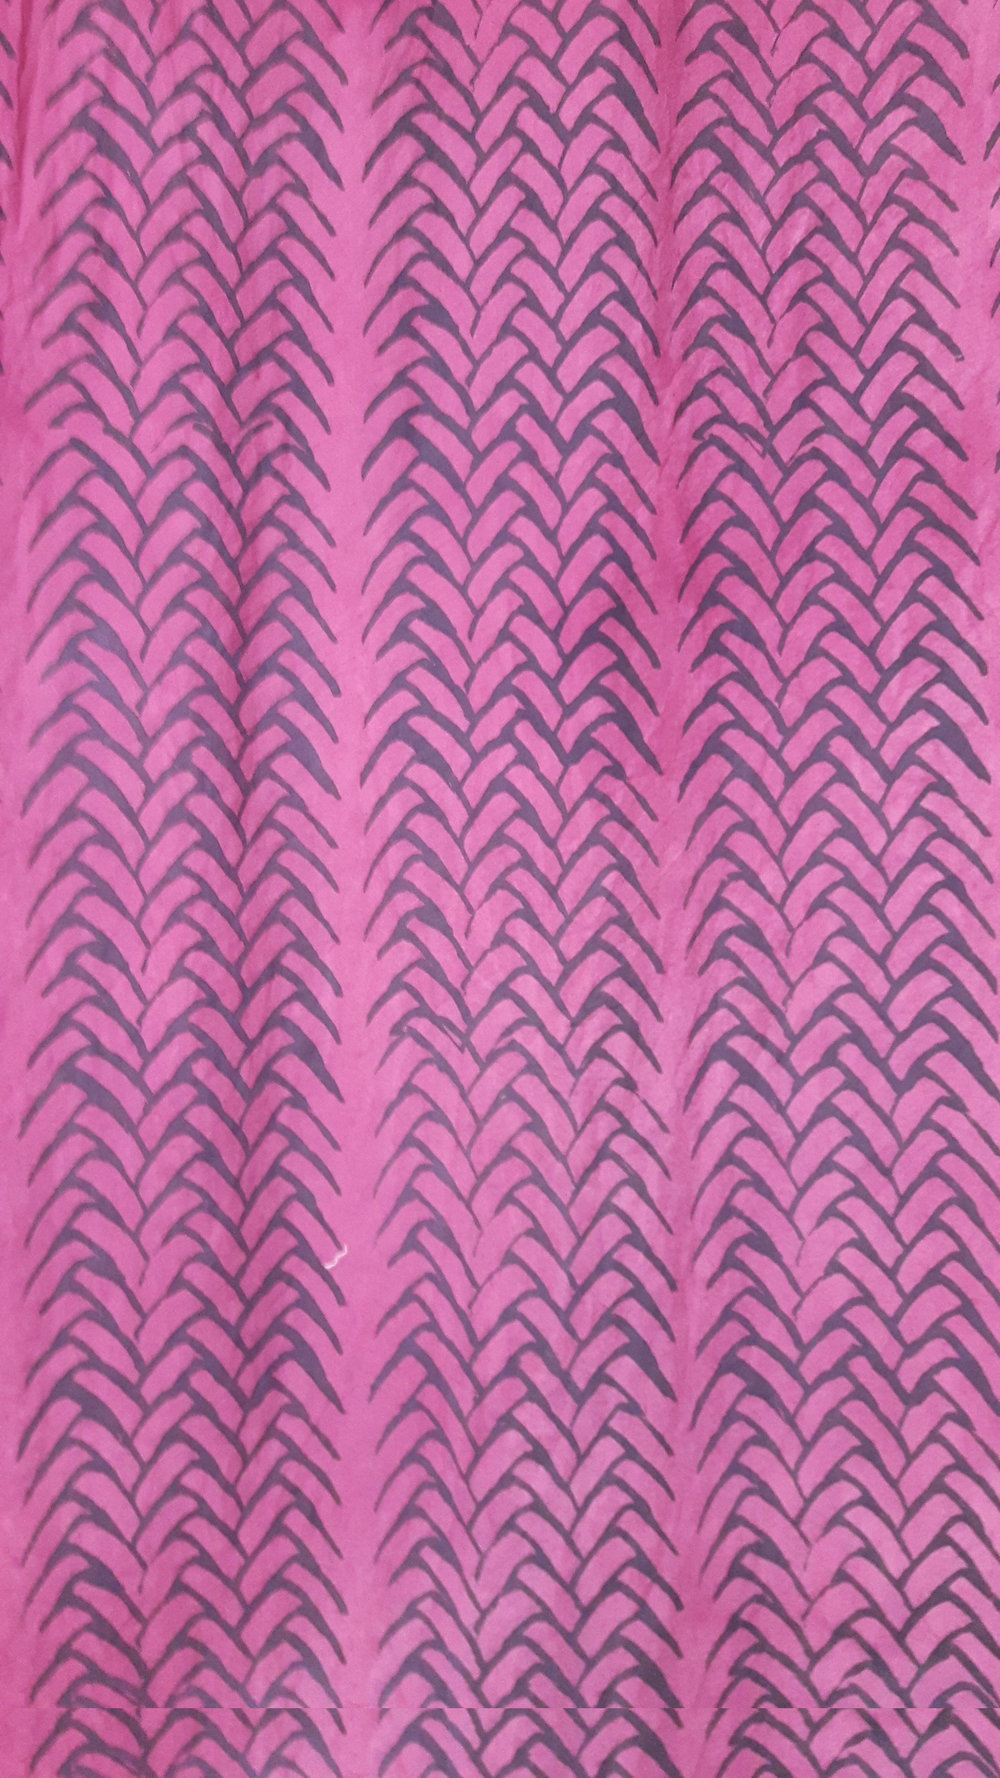 Calico mordant printed with iron and alum, and dyed with cochineal